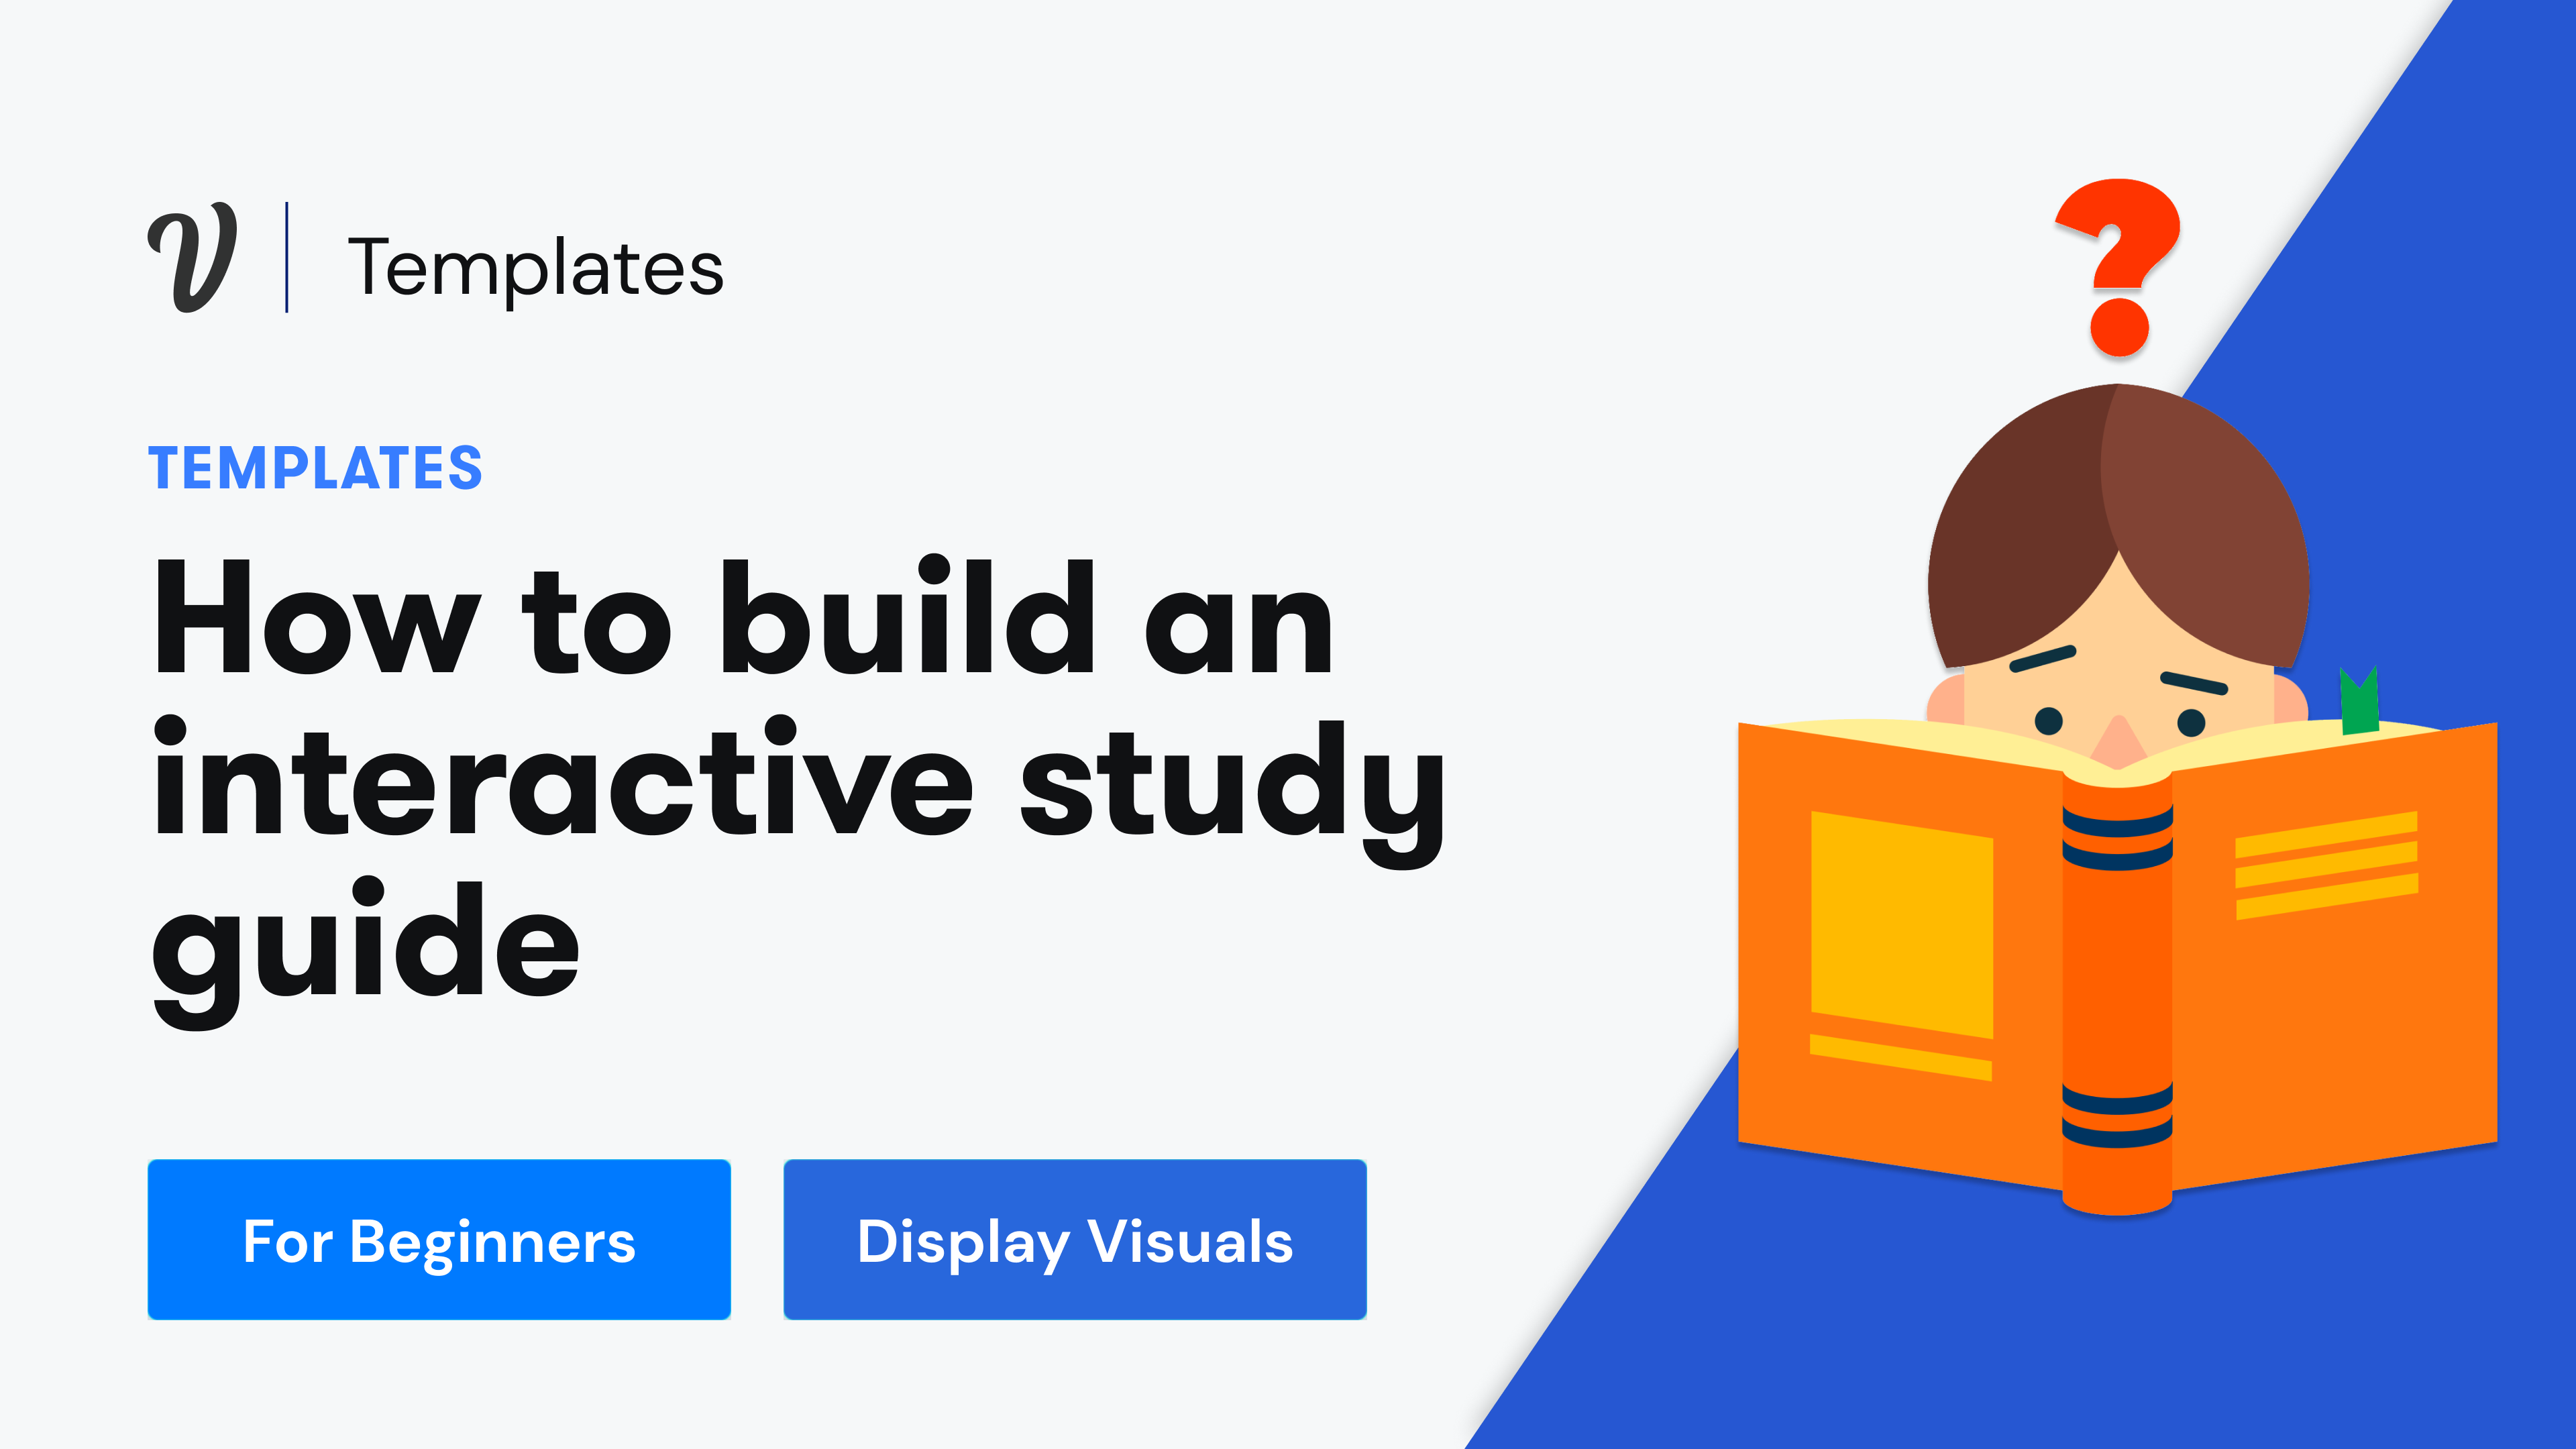 How to build an interactive study guide